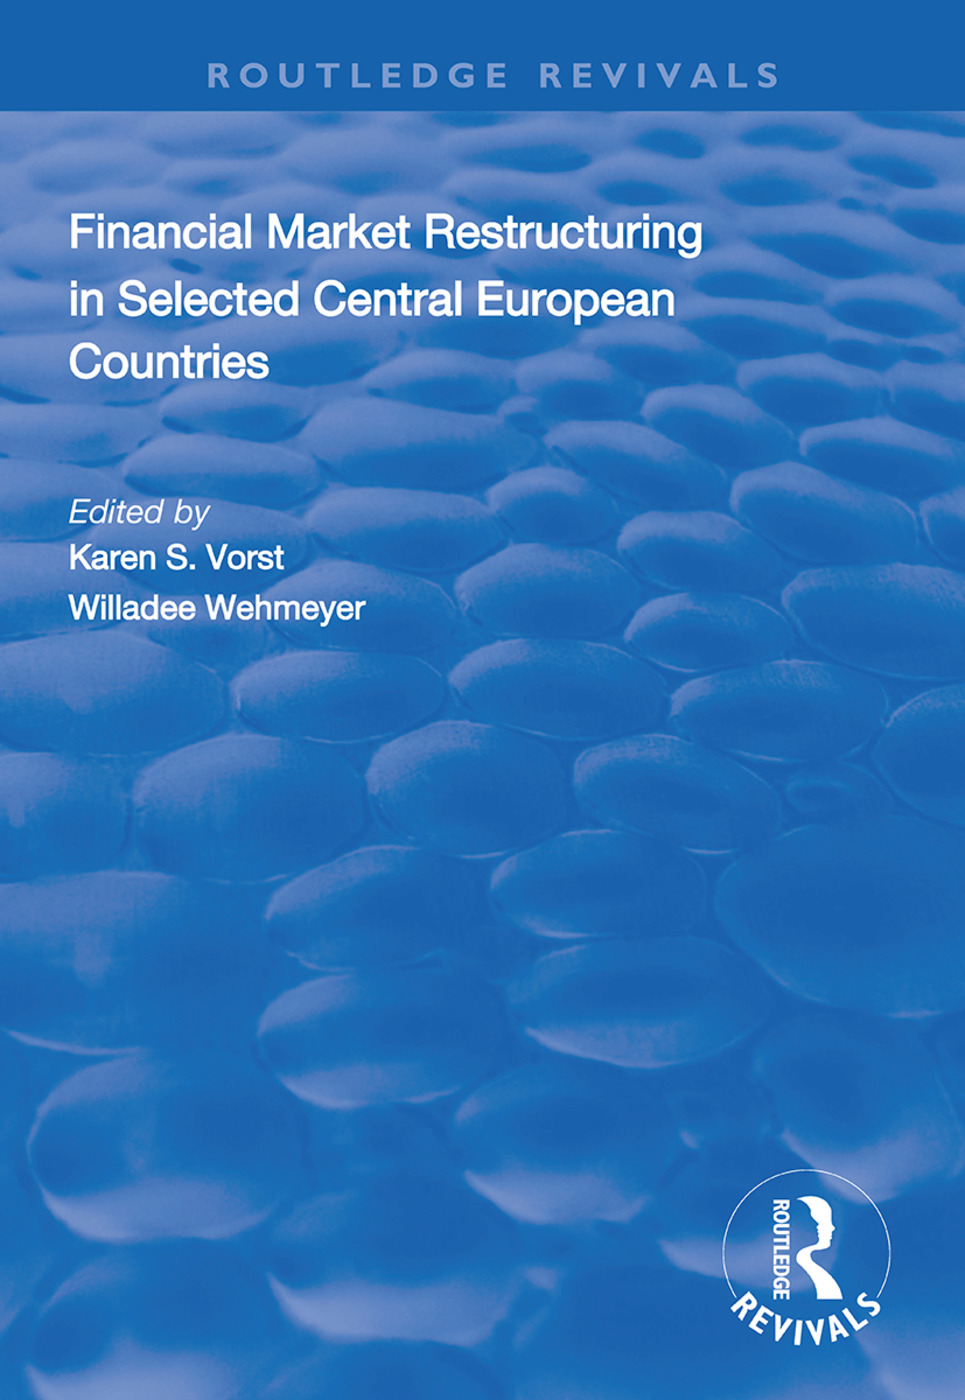 Financial Market Restructuring in Selected Central European Countries